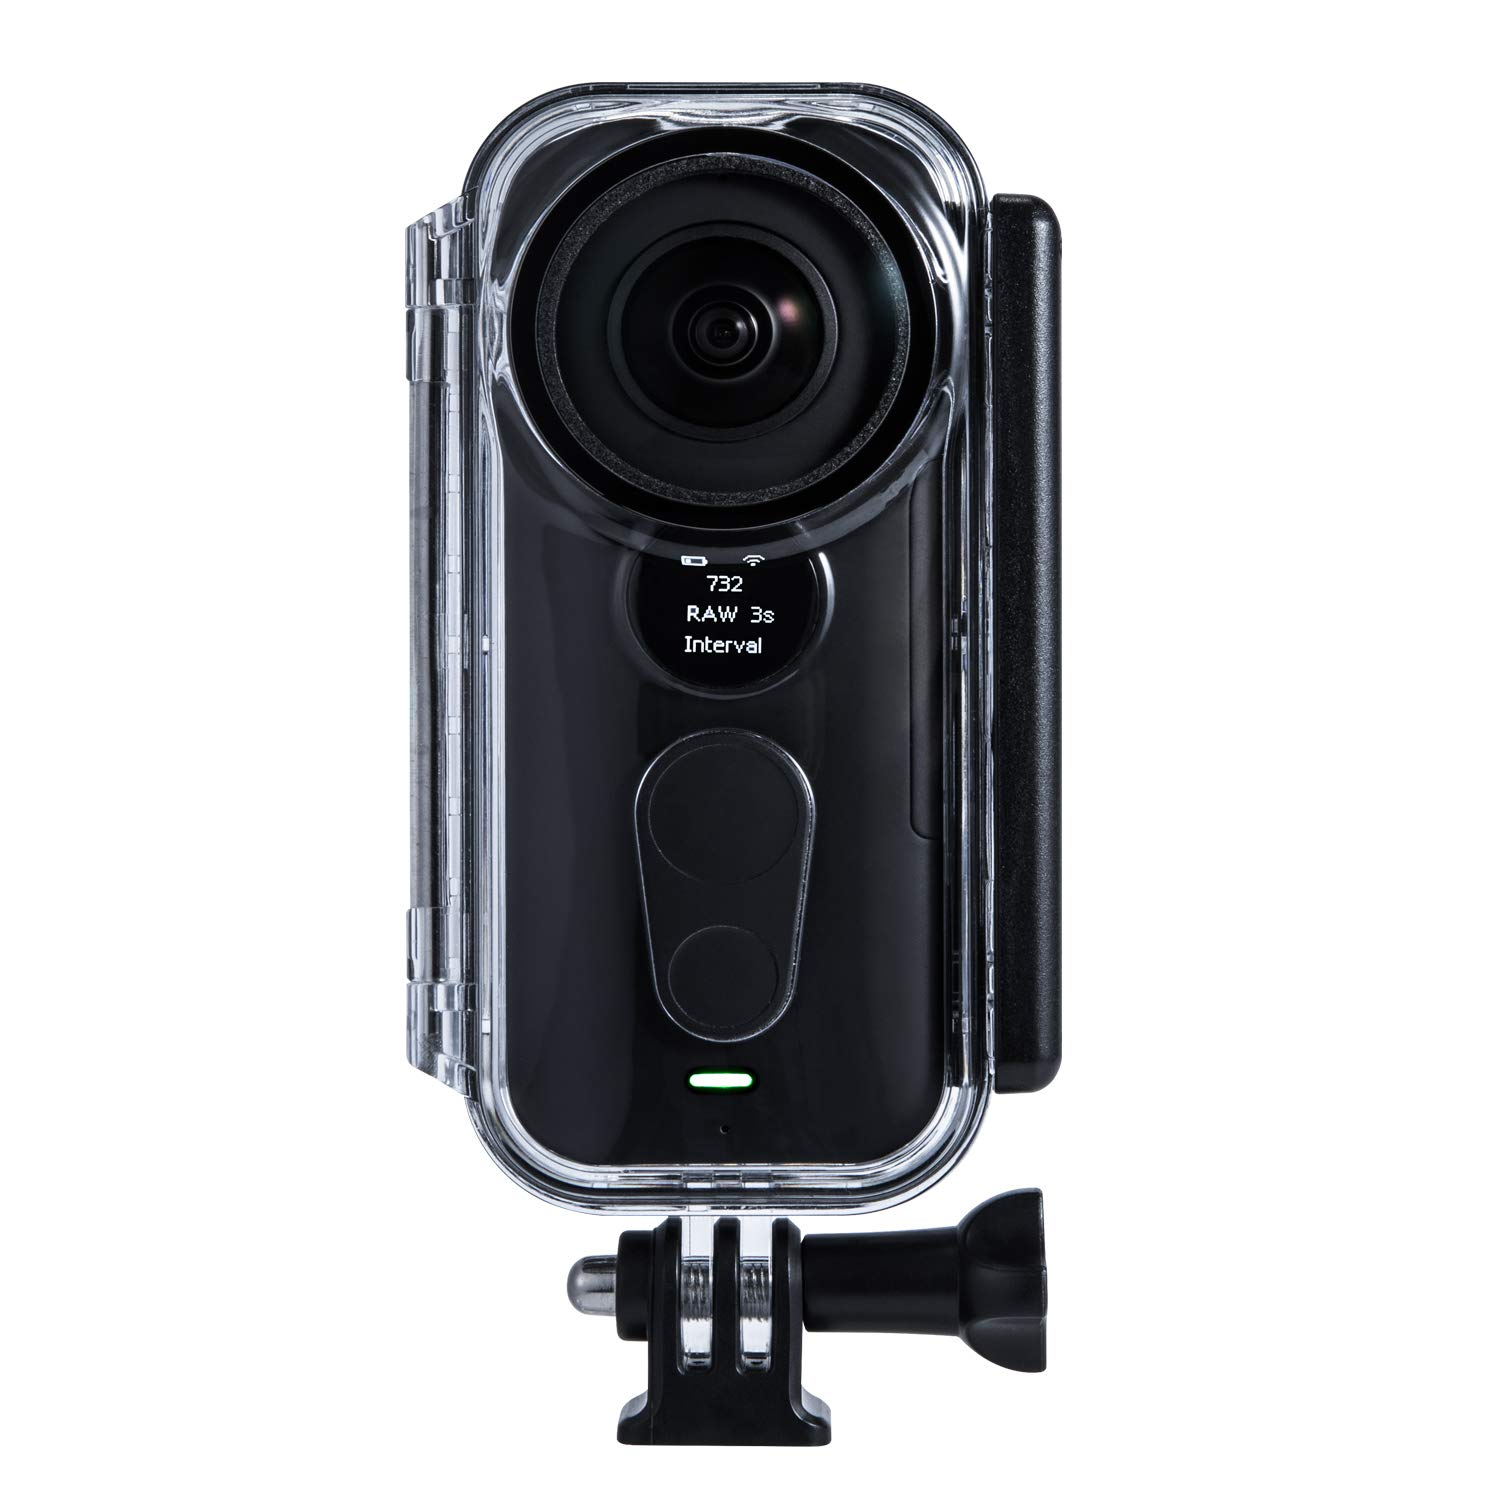 Waterproof Housing Case for Insta360 ONE X Action Camera, Protective 16.4FT/5M Underwater Diving Shell